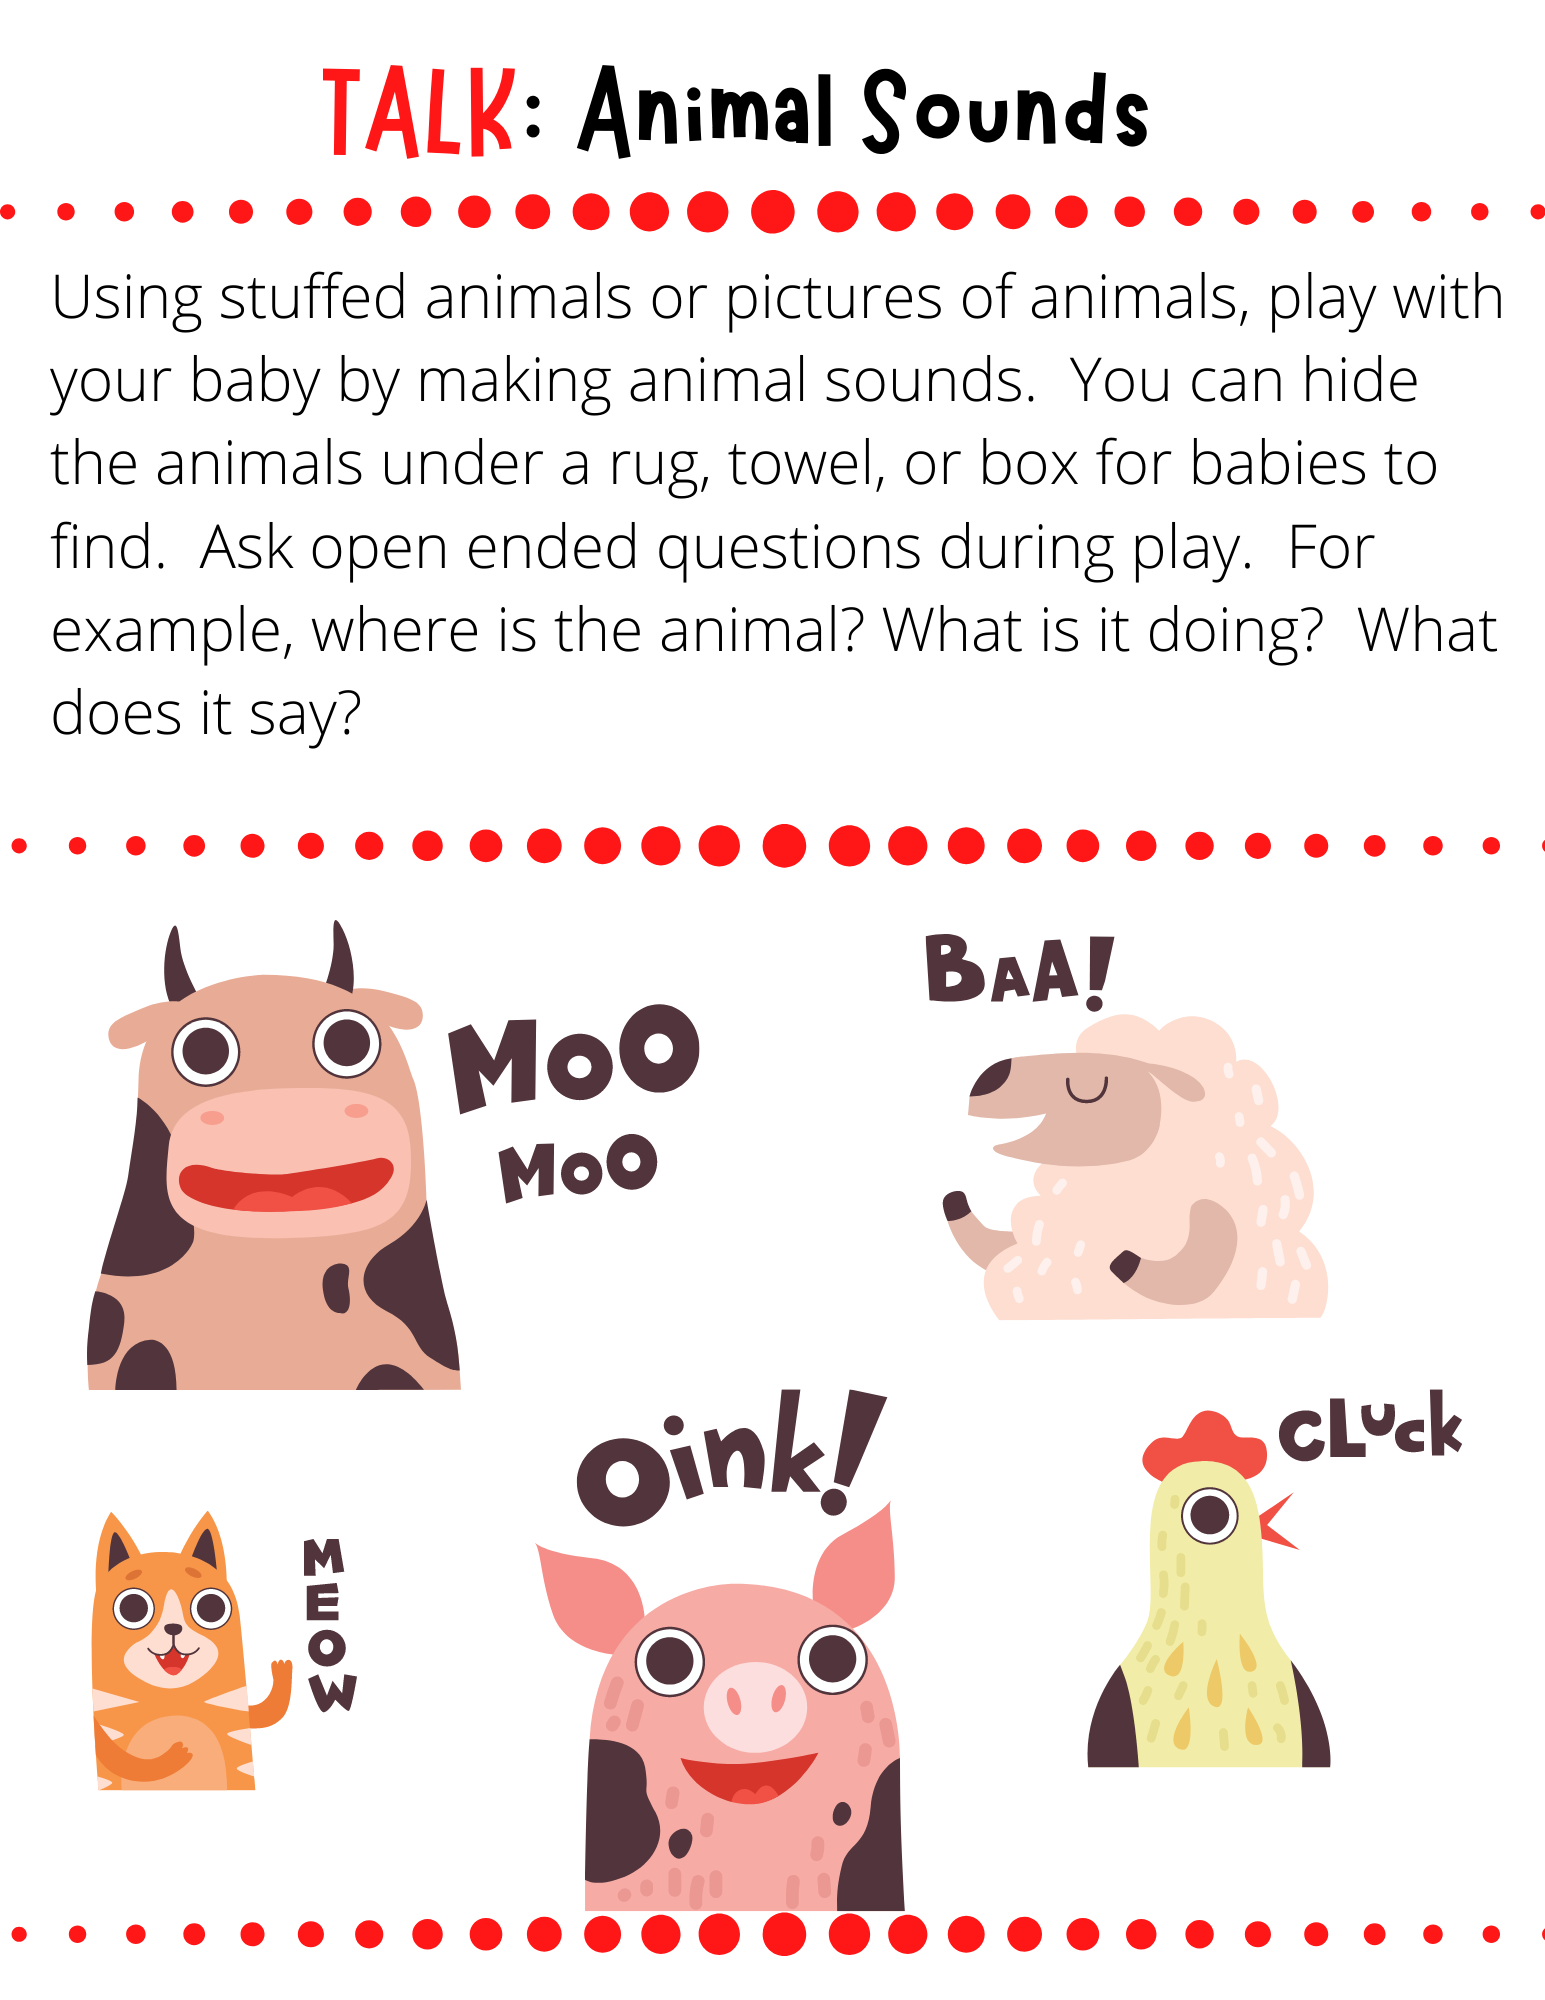 TALK: Animal Sounds Using stuffed animals or pictures of animals, play with your baby by making animal sounds.  You can hide the animals under a rug, towel, or box for babies to find.  Ask open ended questions during play.  For example, where is the animal? What is it doing?  What does it say?